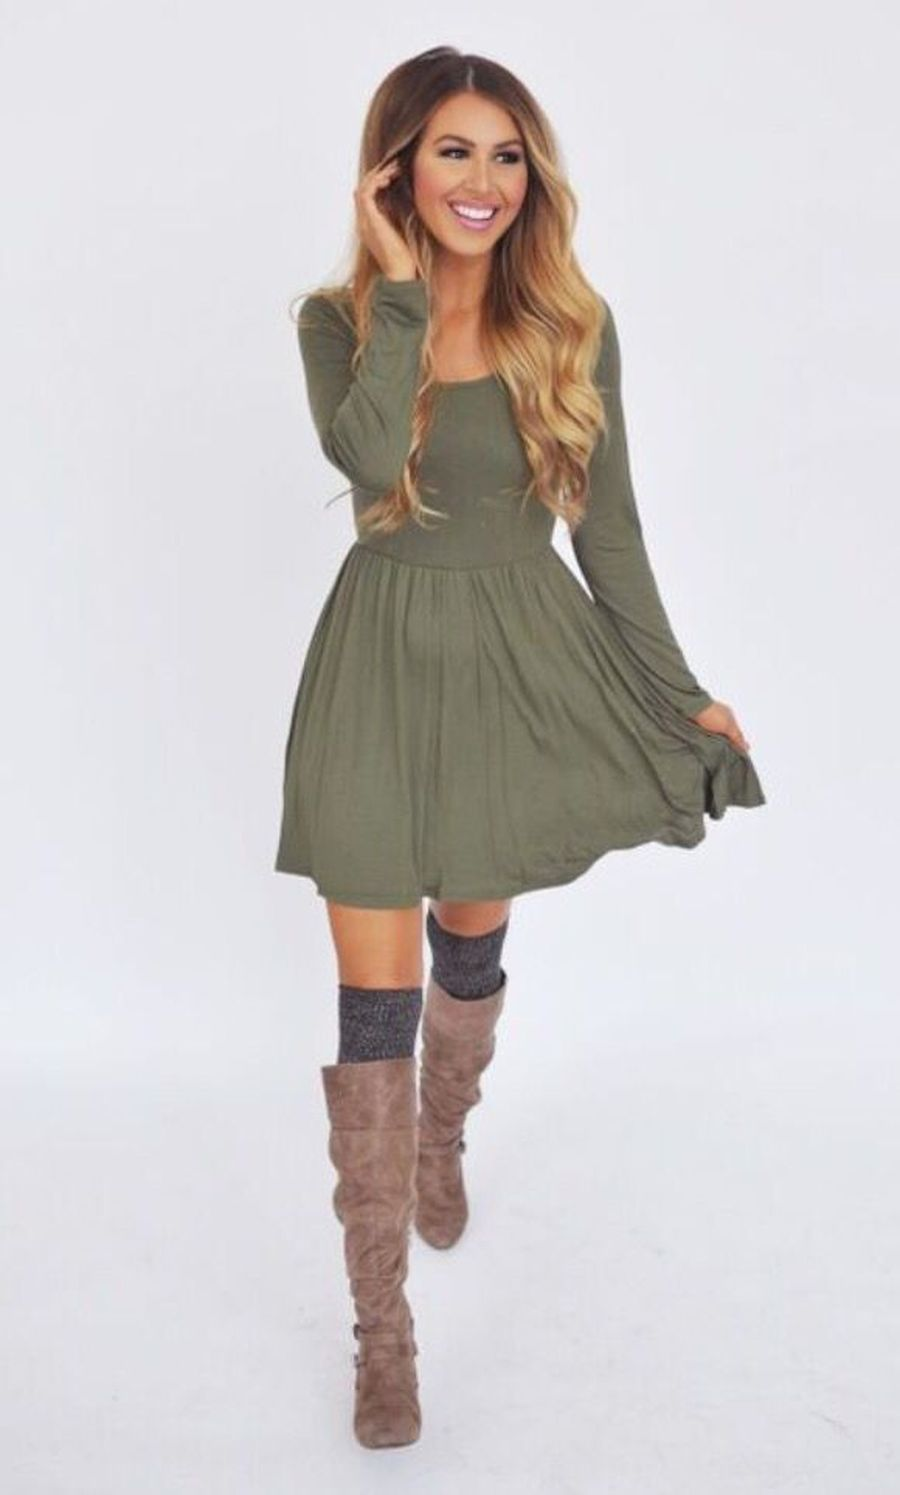 Inspiring skirt and boots combinations for fall and winter outfits 3